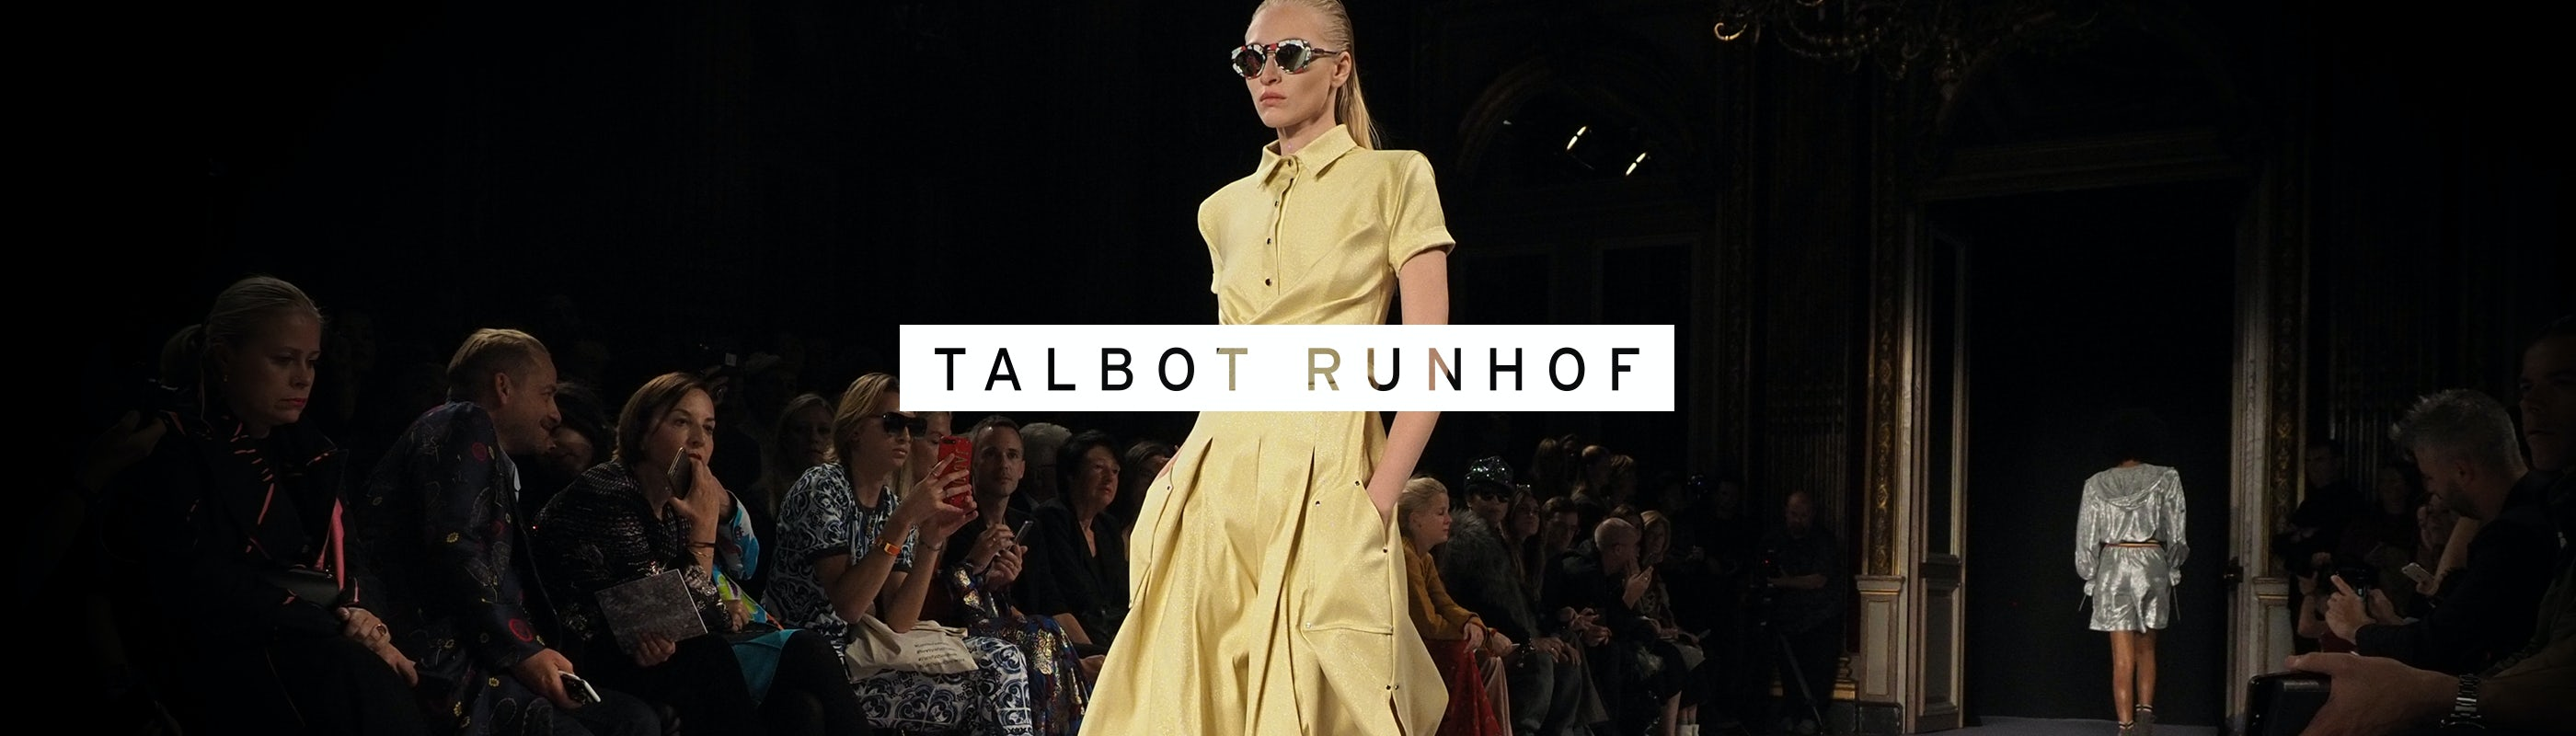 Profile image for Talbot Runhof